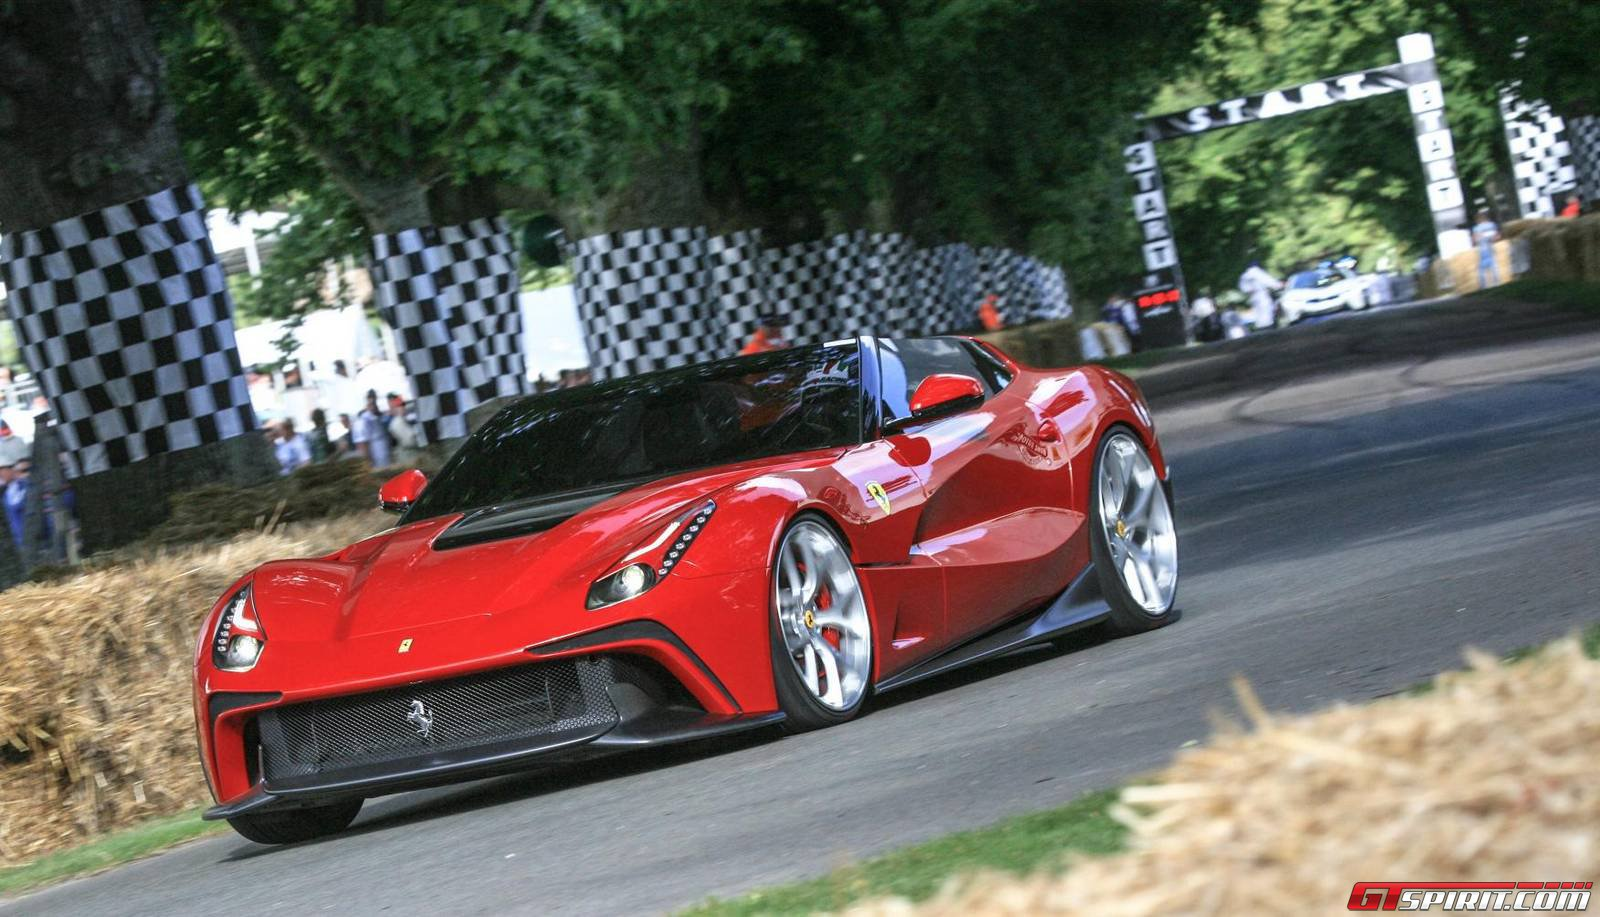 According To New Reports From The Czech Republic, The Special Limited  Edition Ferrari Model Set To Be Limited To Just 10 Units And The American  Market, ...